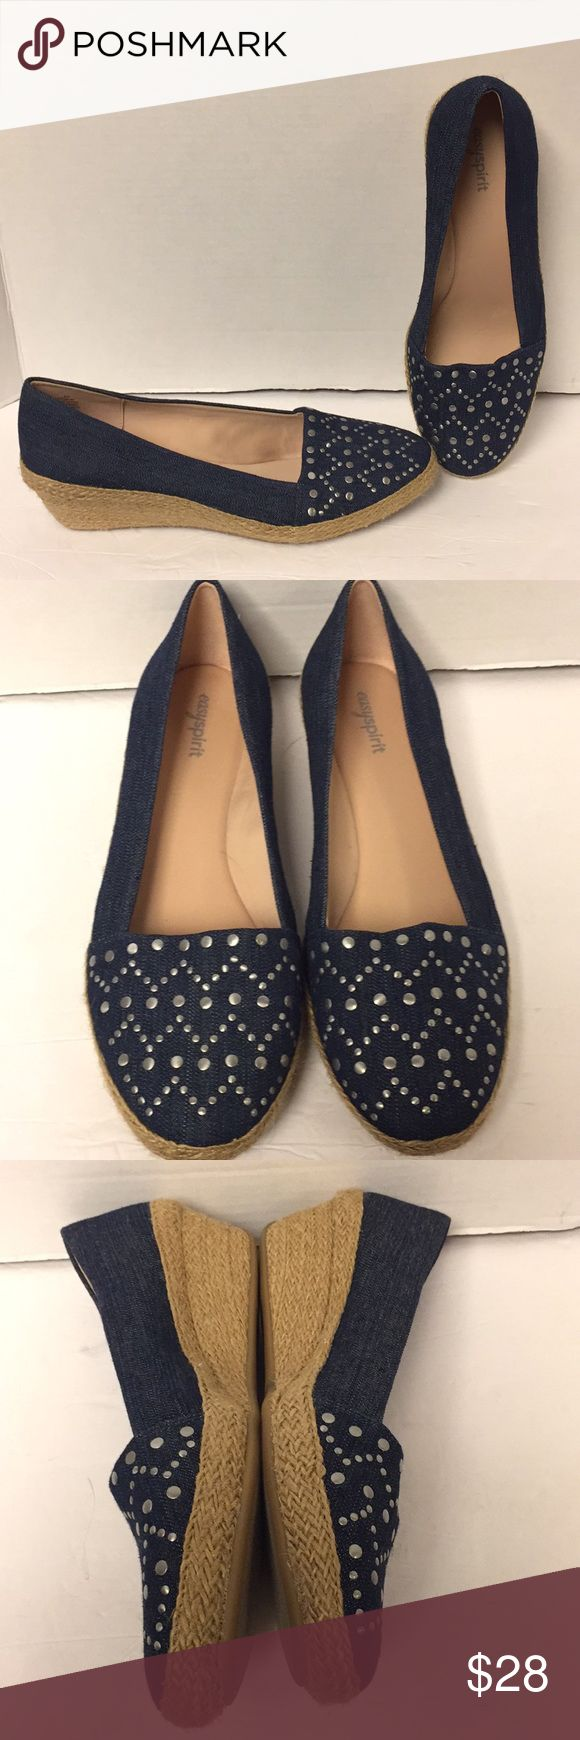 Easy Spirit Esdimone Espadrille denim wedge shoes Excellent condition, never worn, super cute silver embellishments on top. Smoke free home. Two darker spots on bottom of shoe from the factory, please see picture, this does not hurt shoe. Soft insoles. Easy Spirit Shoes Espadrilles